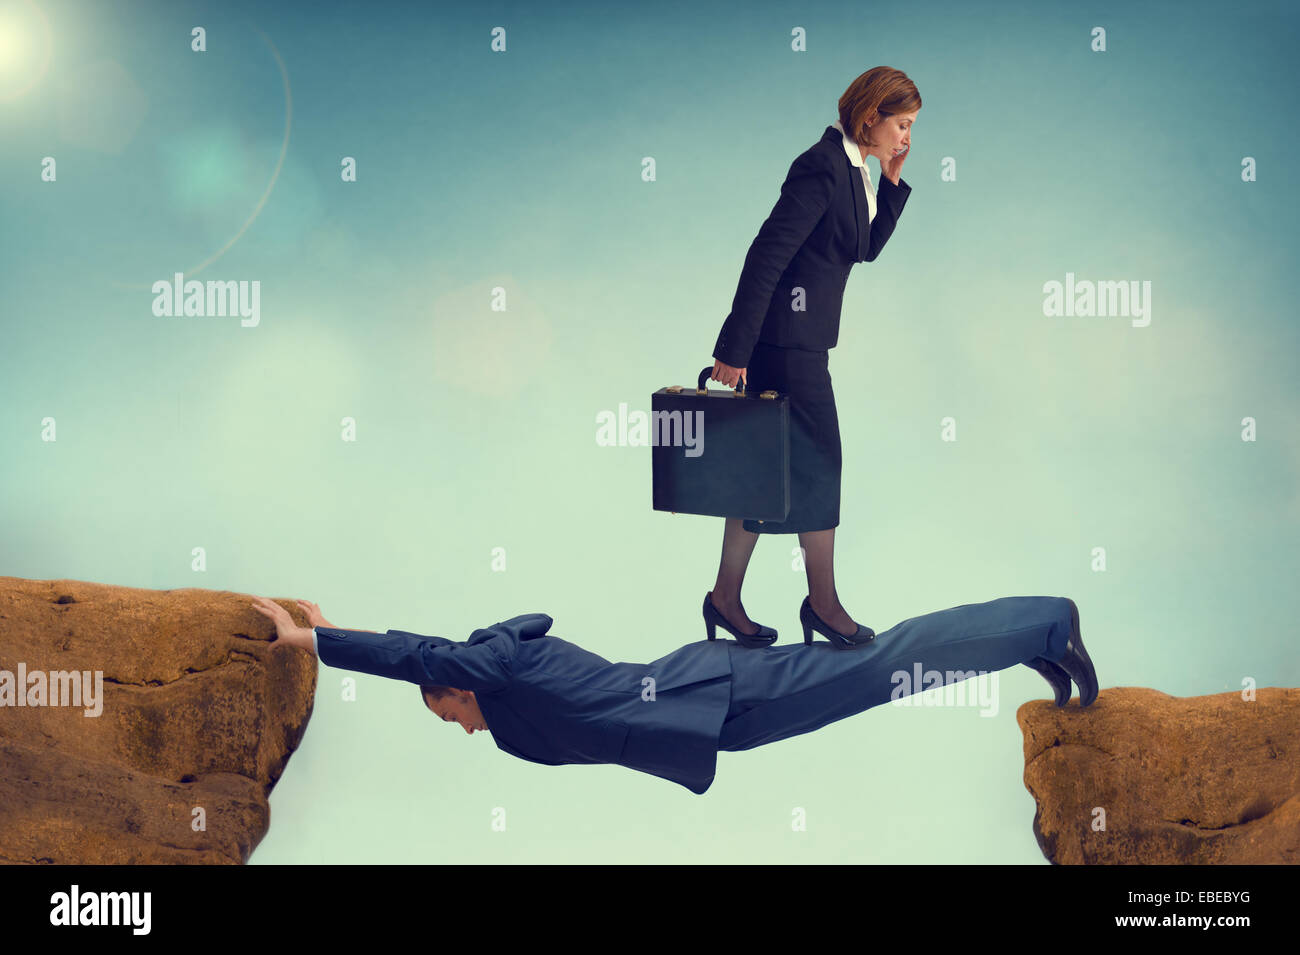 ruthless business woman walking over a vulnerable businessman - ambition concept - Stock Image